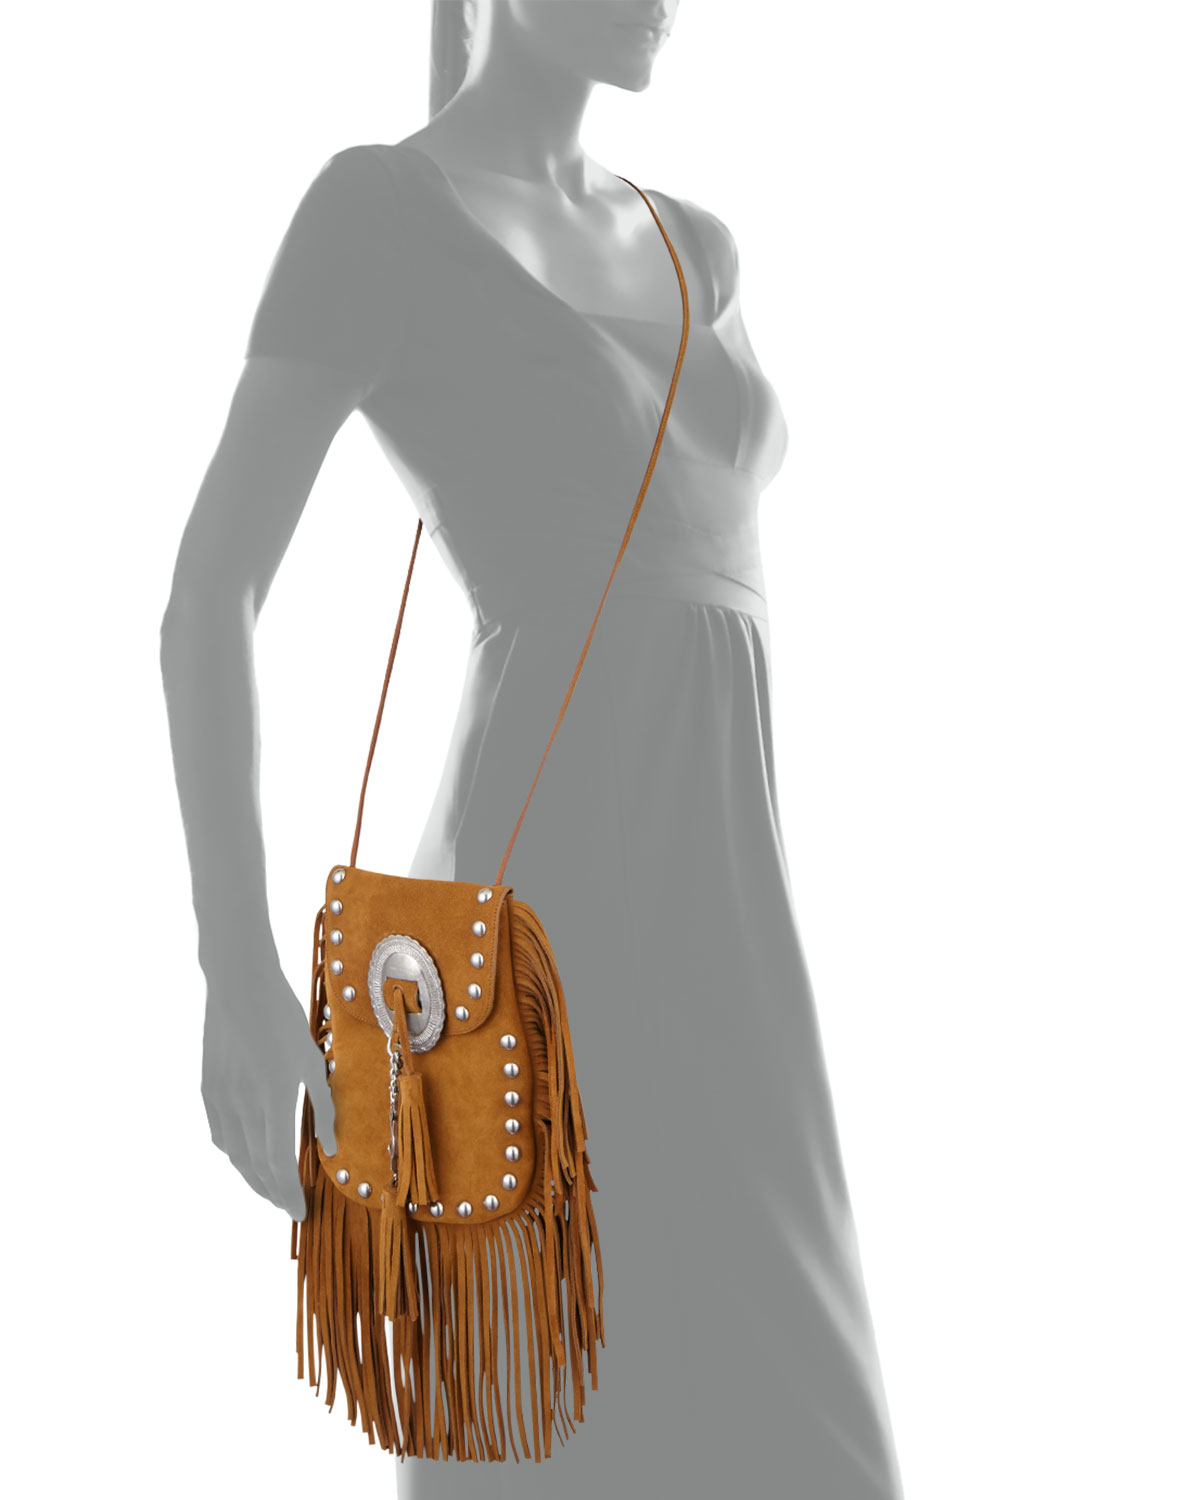 on sale 5ed2f 962b5 Lyst Saint Lau Anita Small Suede Fringed Shoulder Bag  In Brown ... 06dbad3dc7